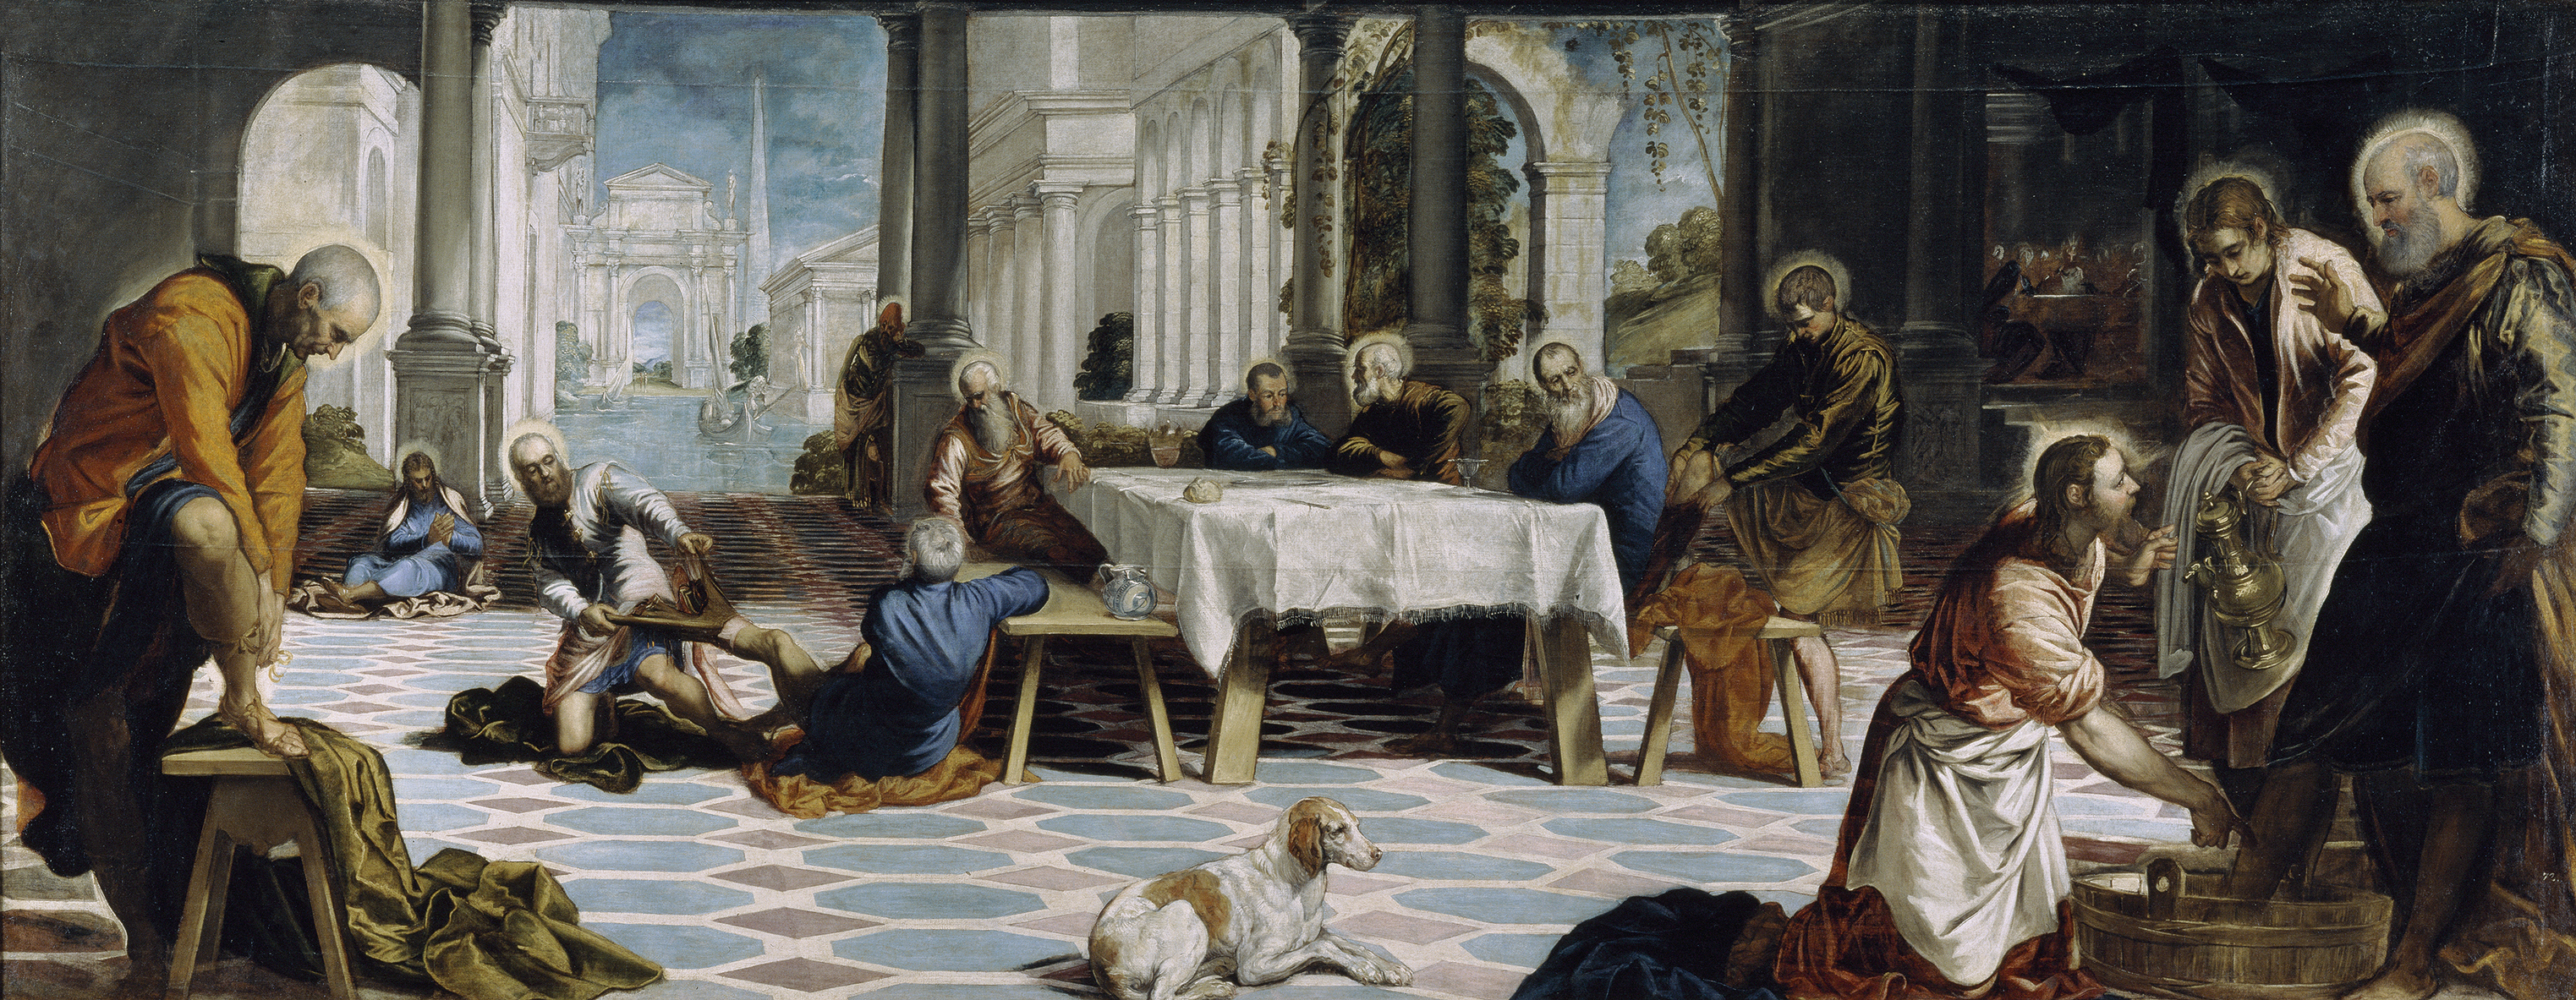 TINTORETTO WASHING OF THE FEET